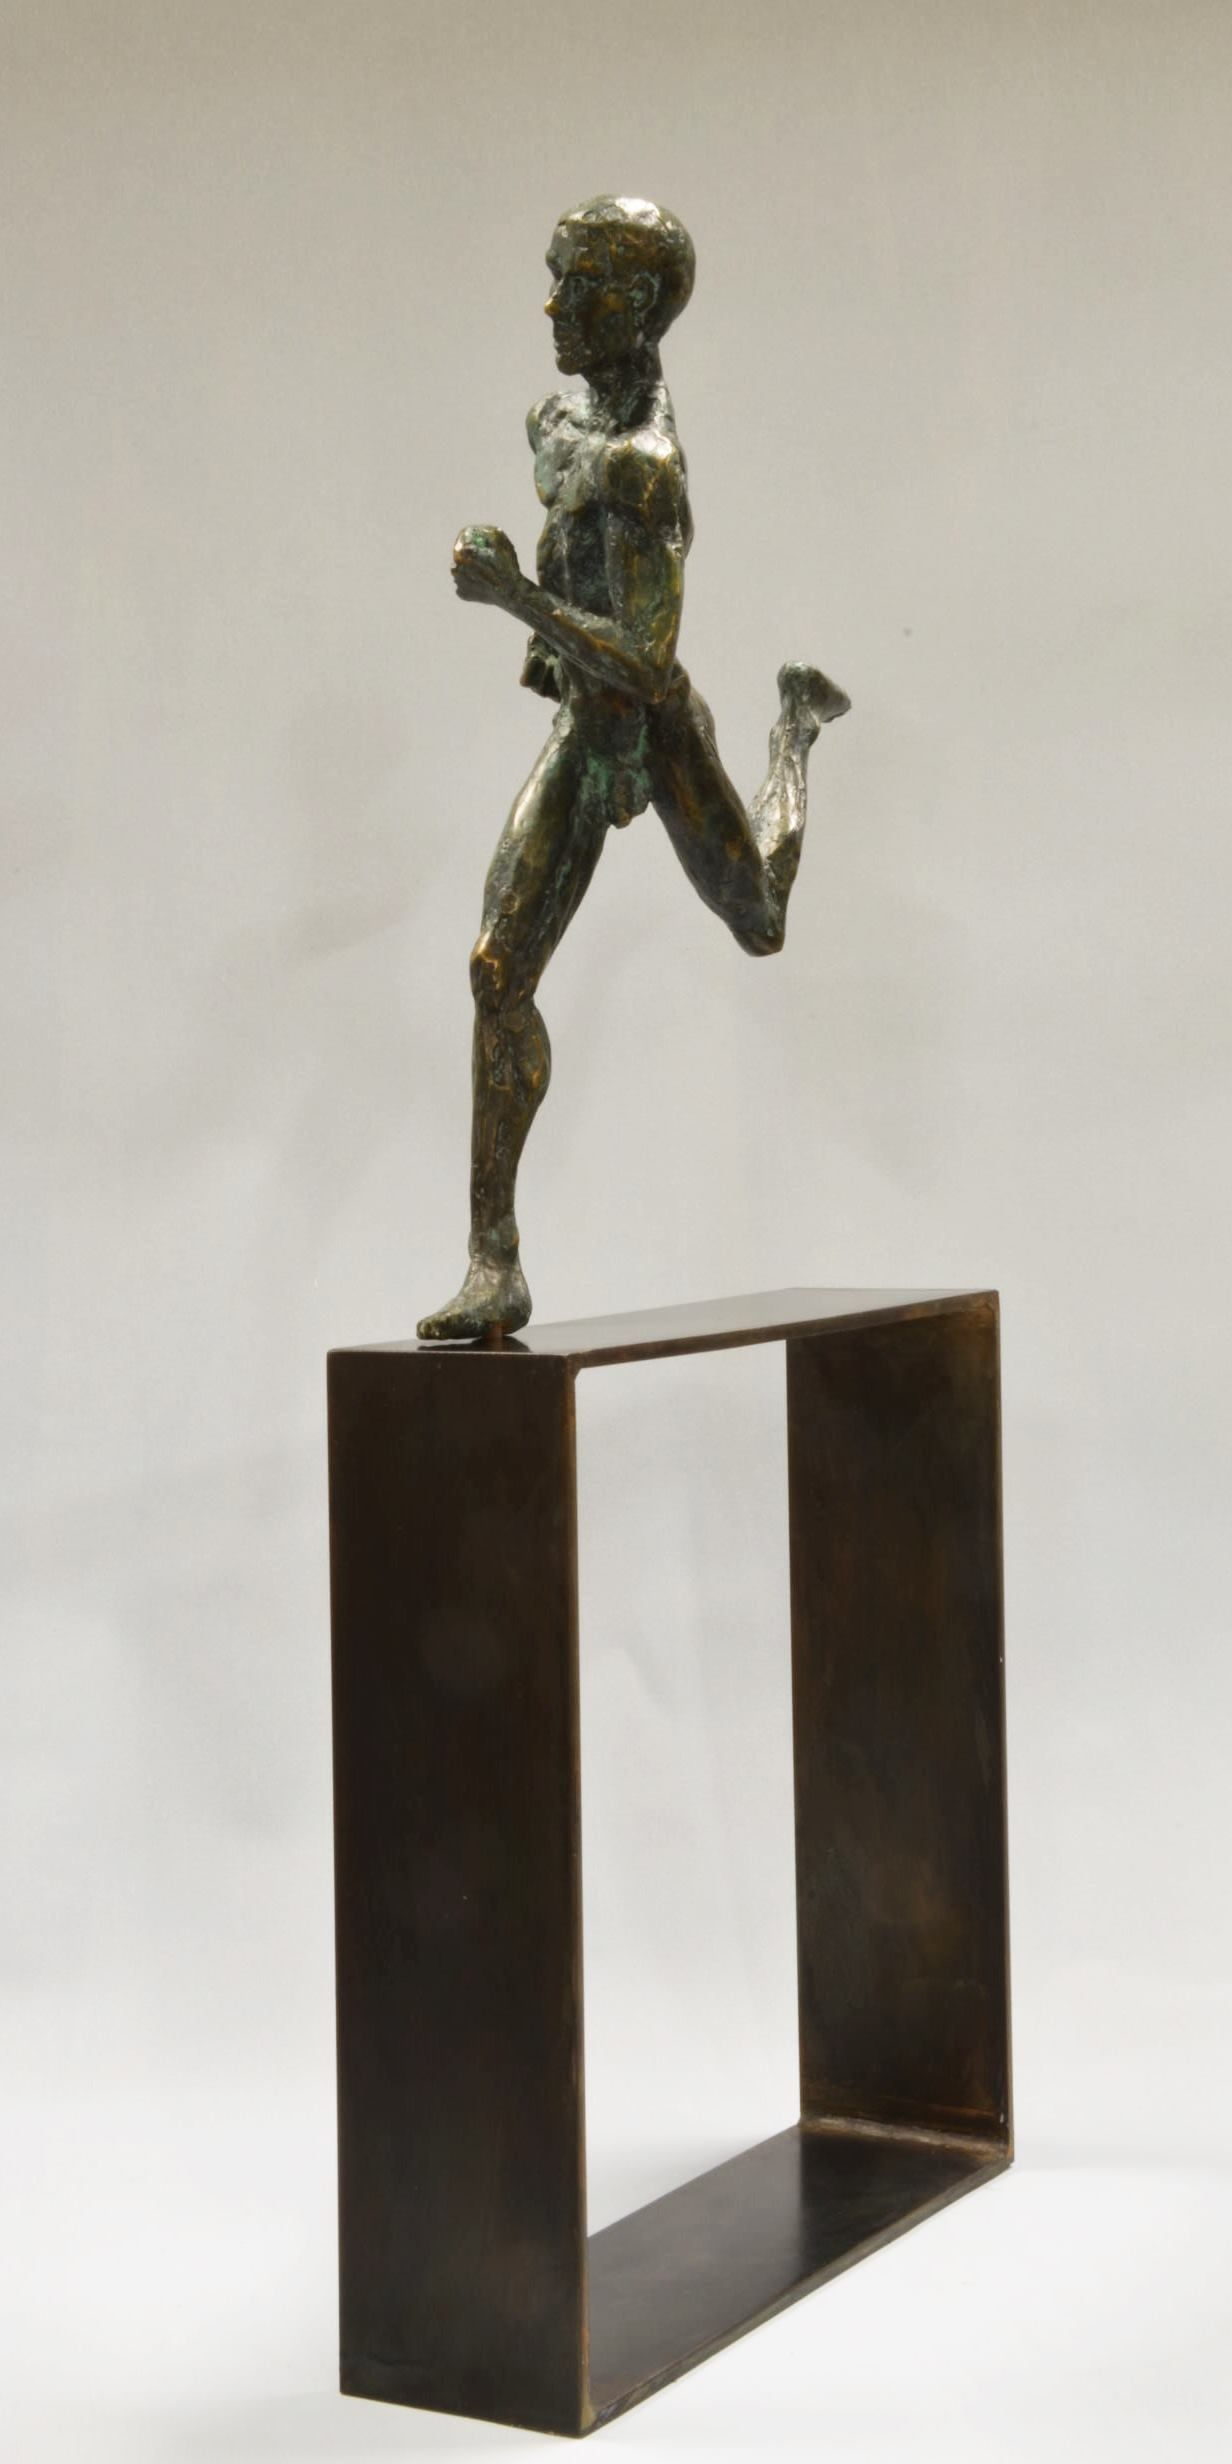 Runner Marathon,Yann Guillon,Sculpture, detail 2